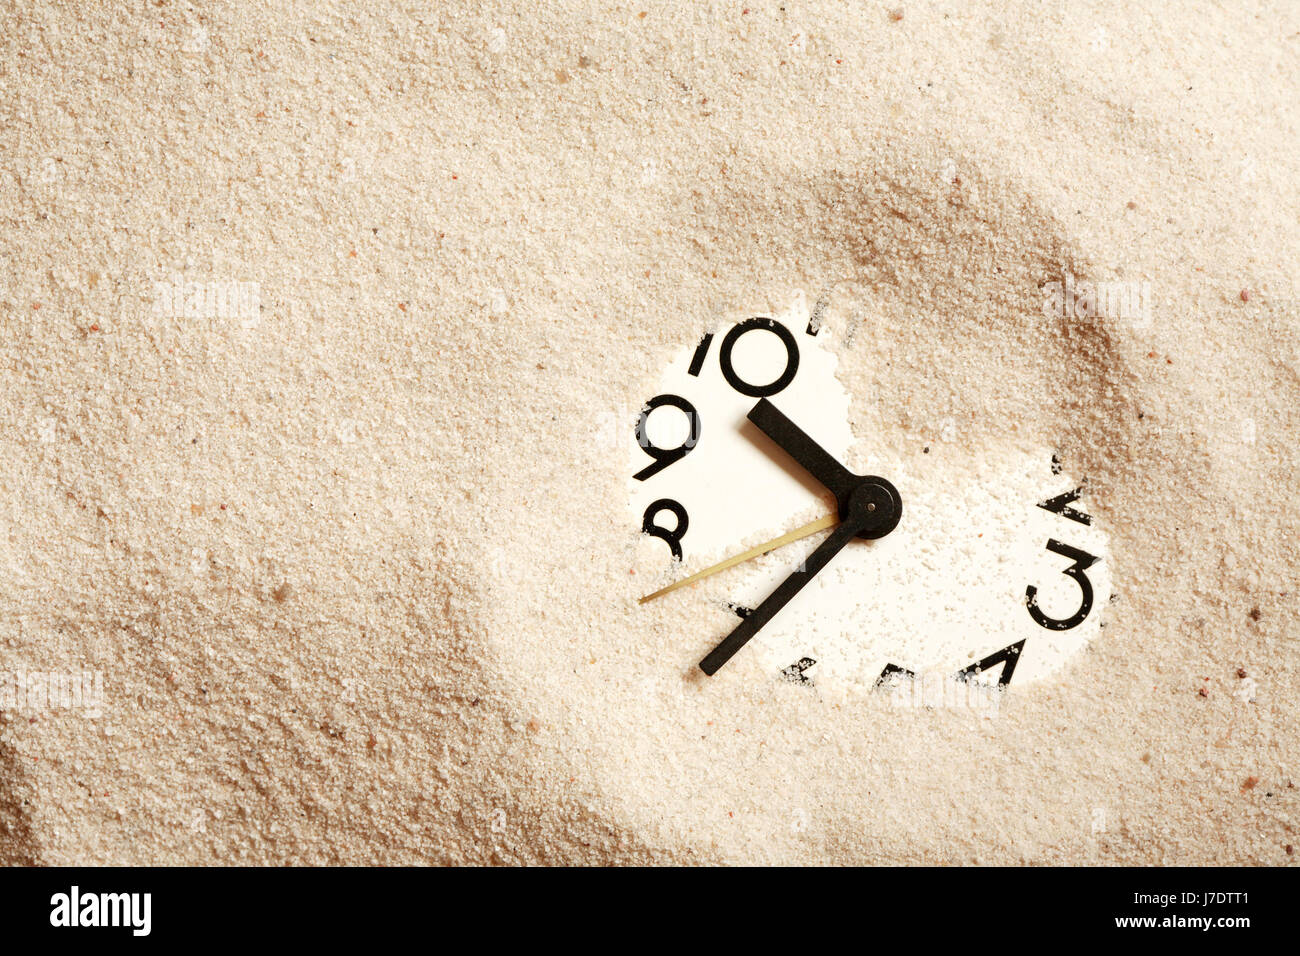 Time concept. Sand background with clock face - Stock Image